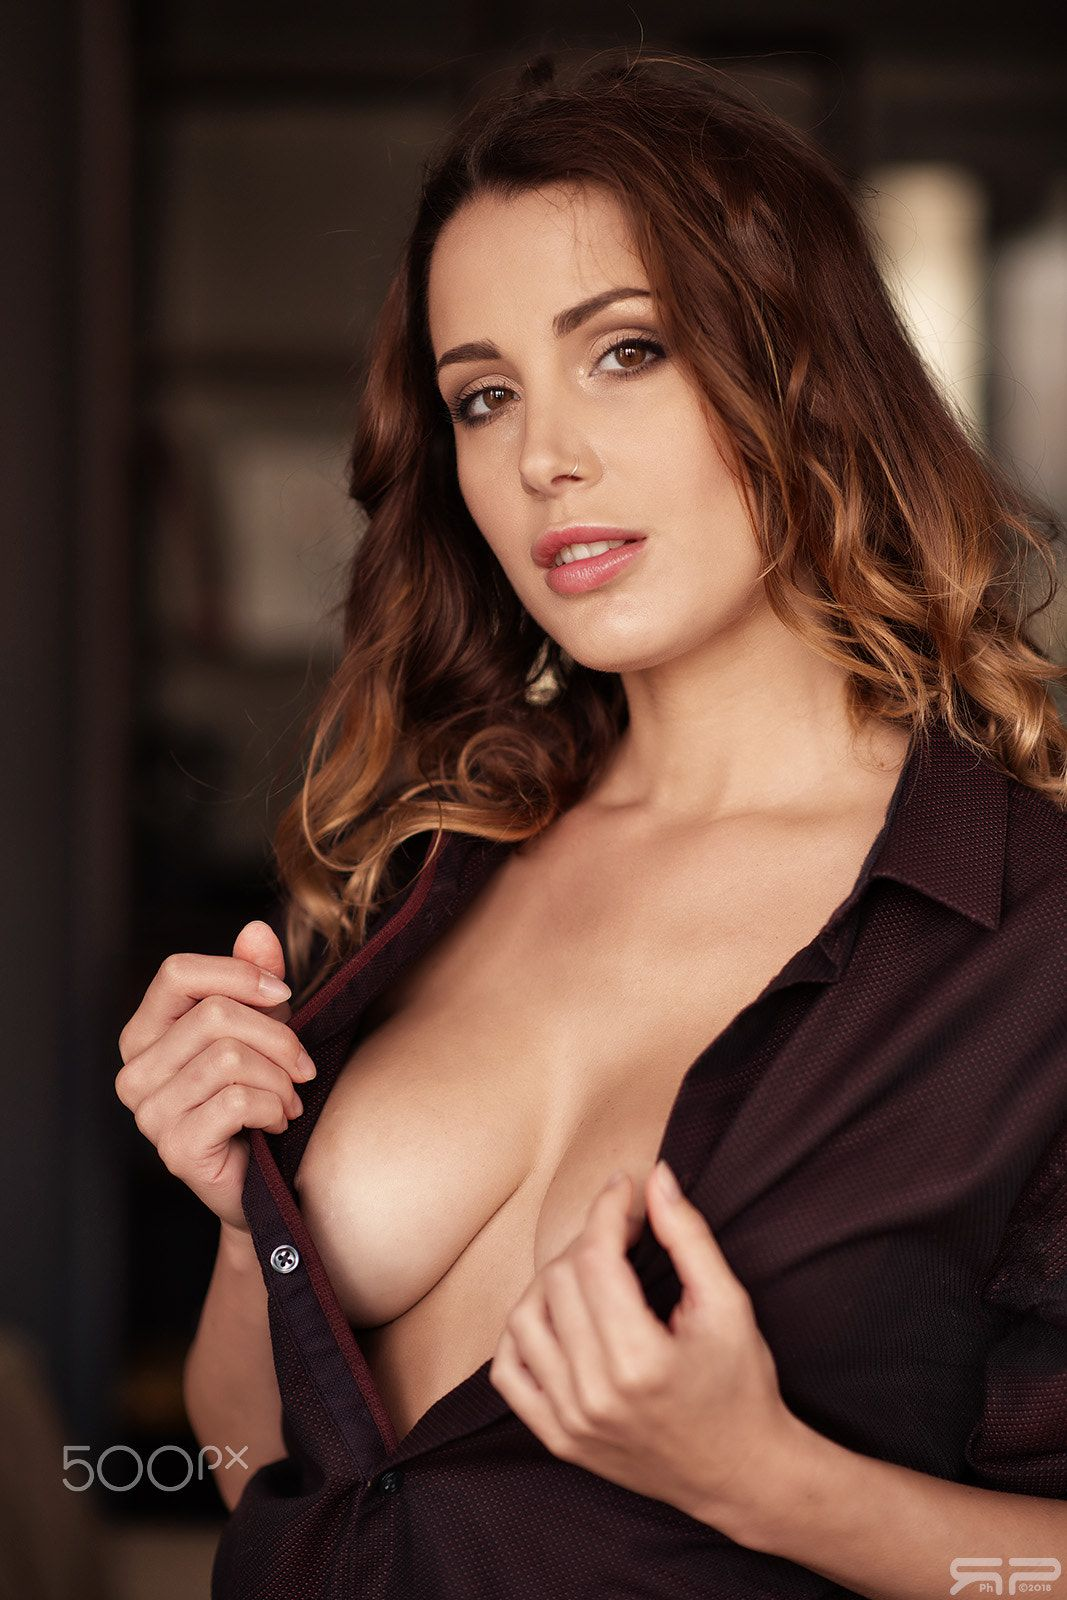 Sadie Gray nudes (12 photos) Pussy, YouTube, lingerie